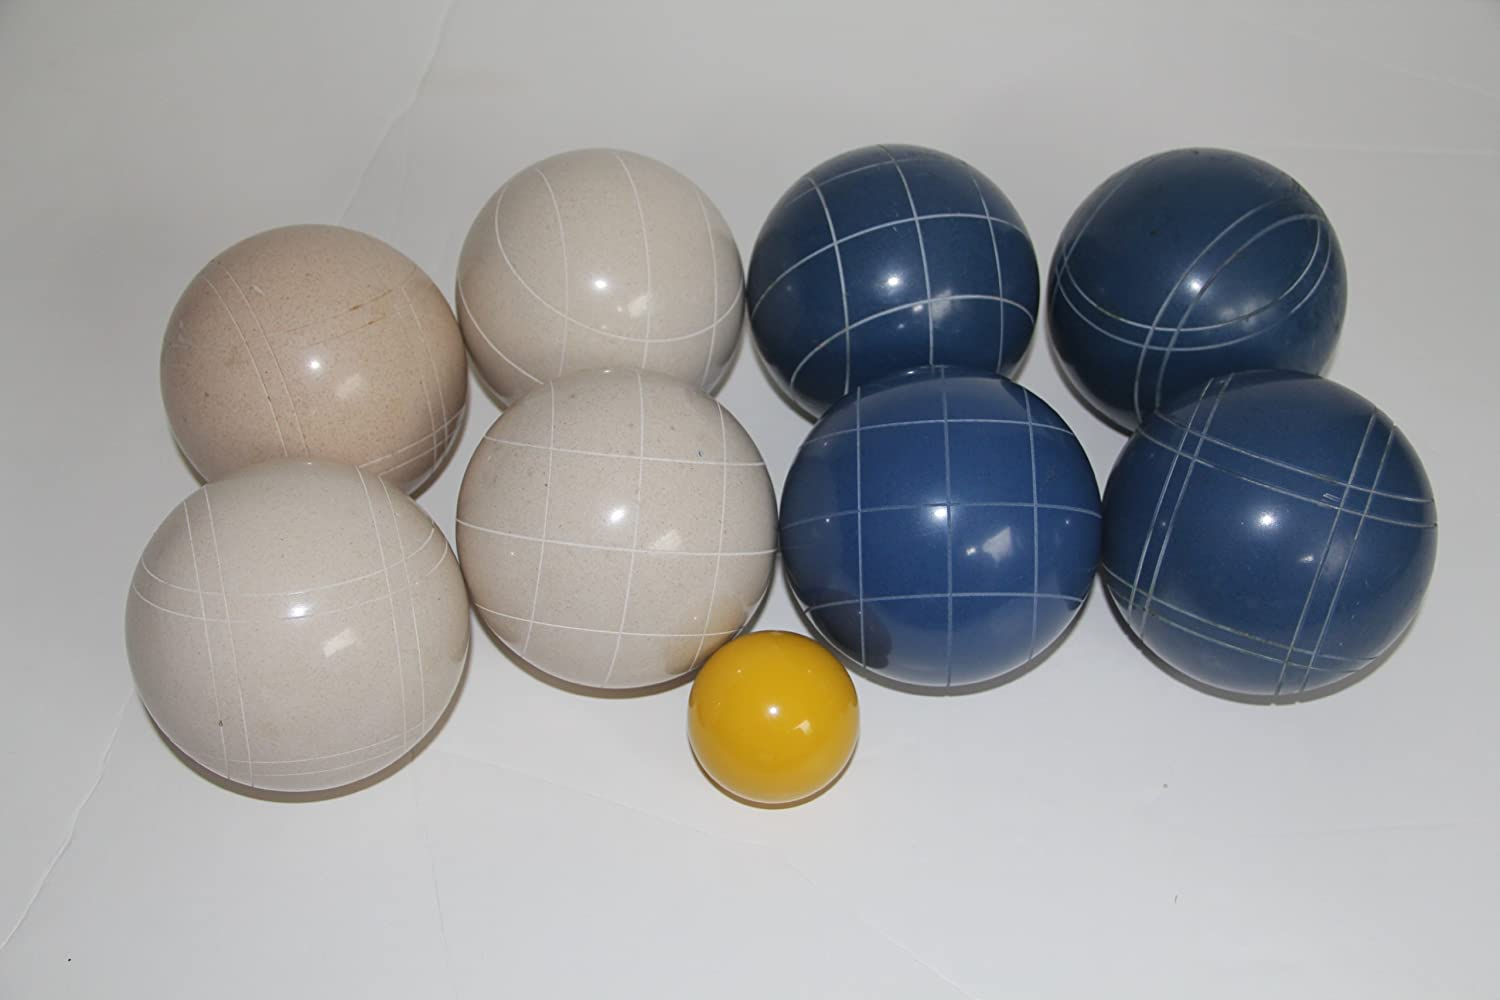 Premium Quality EPCO Tournament Bocce Set - 107mm Blue and White Bocce Balls ...